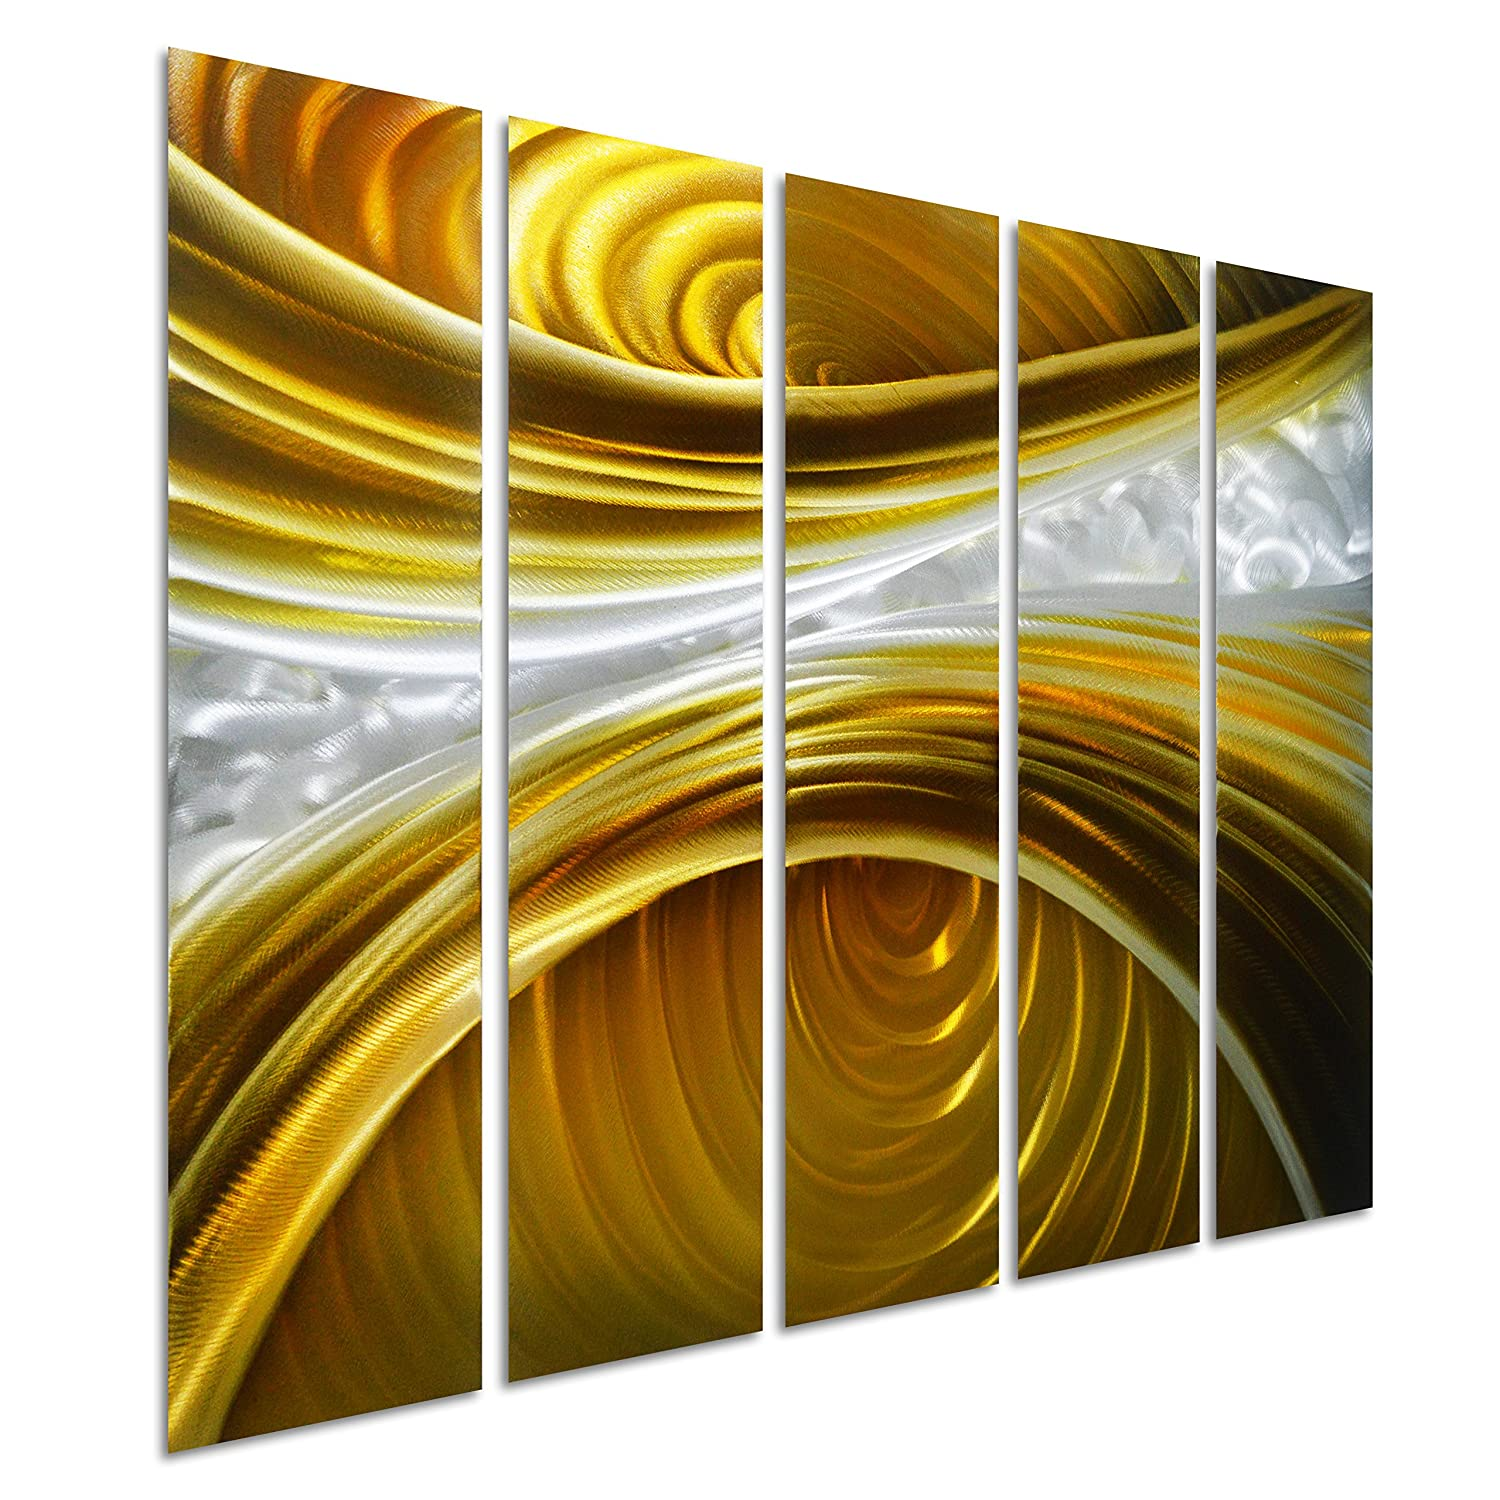 Amazon.com: Pure Art Infinite Brown - Abstract Metal Wall Art ...